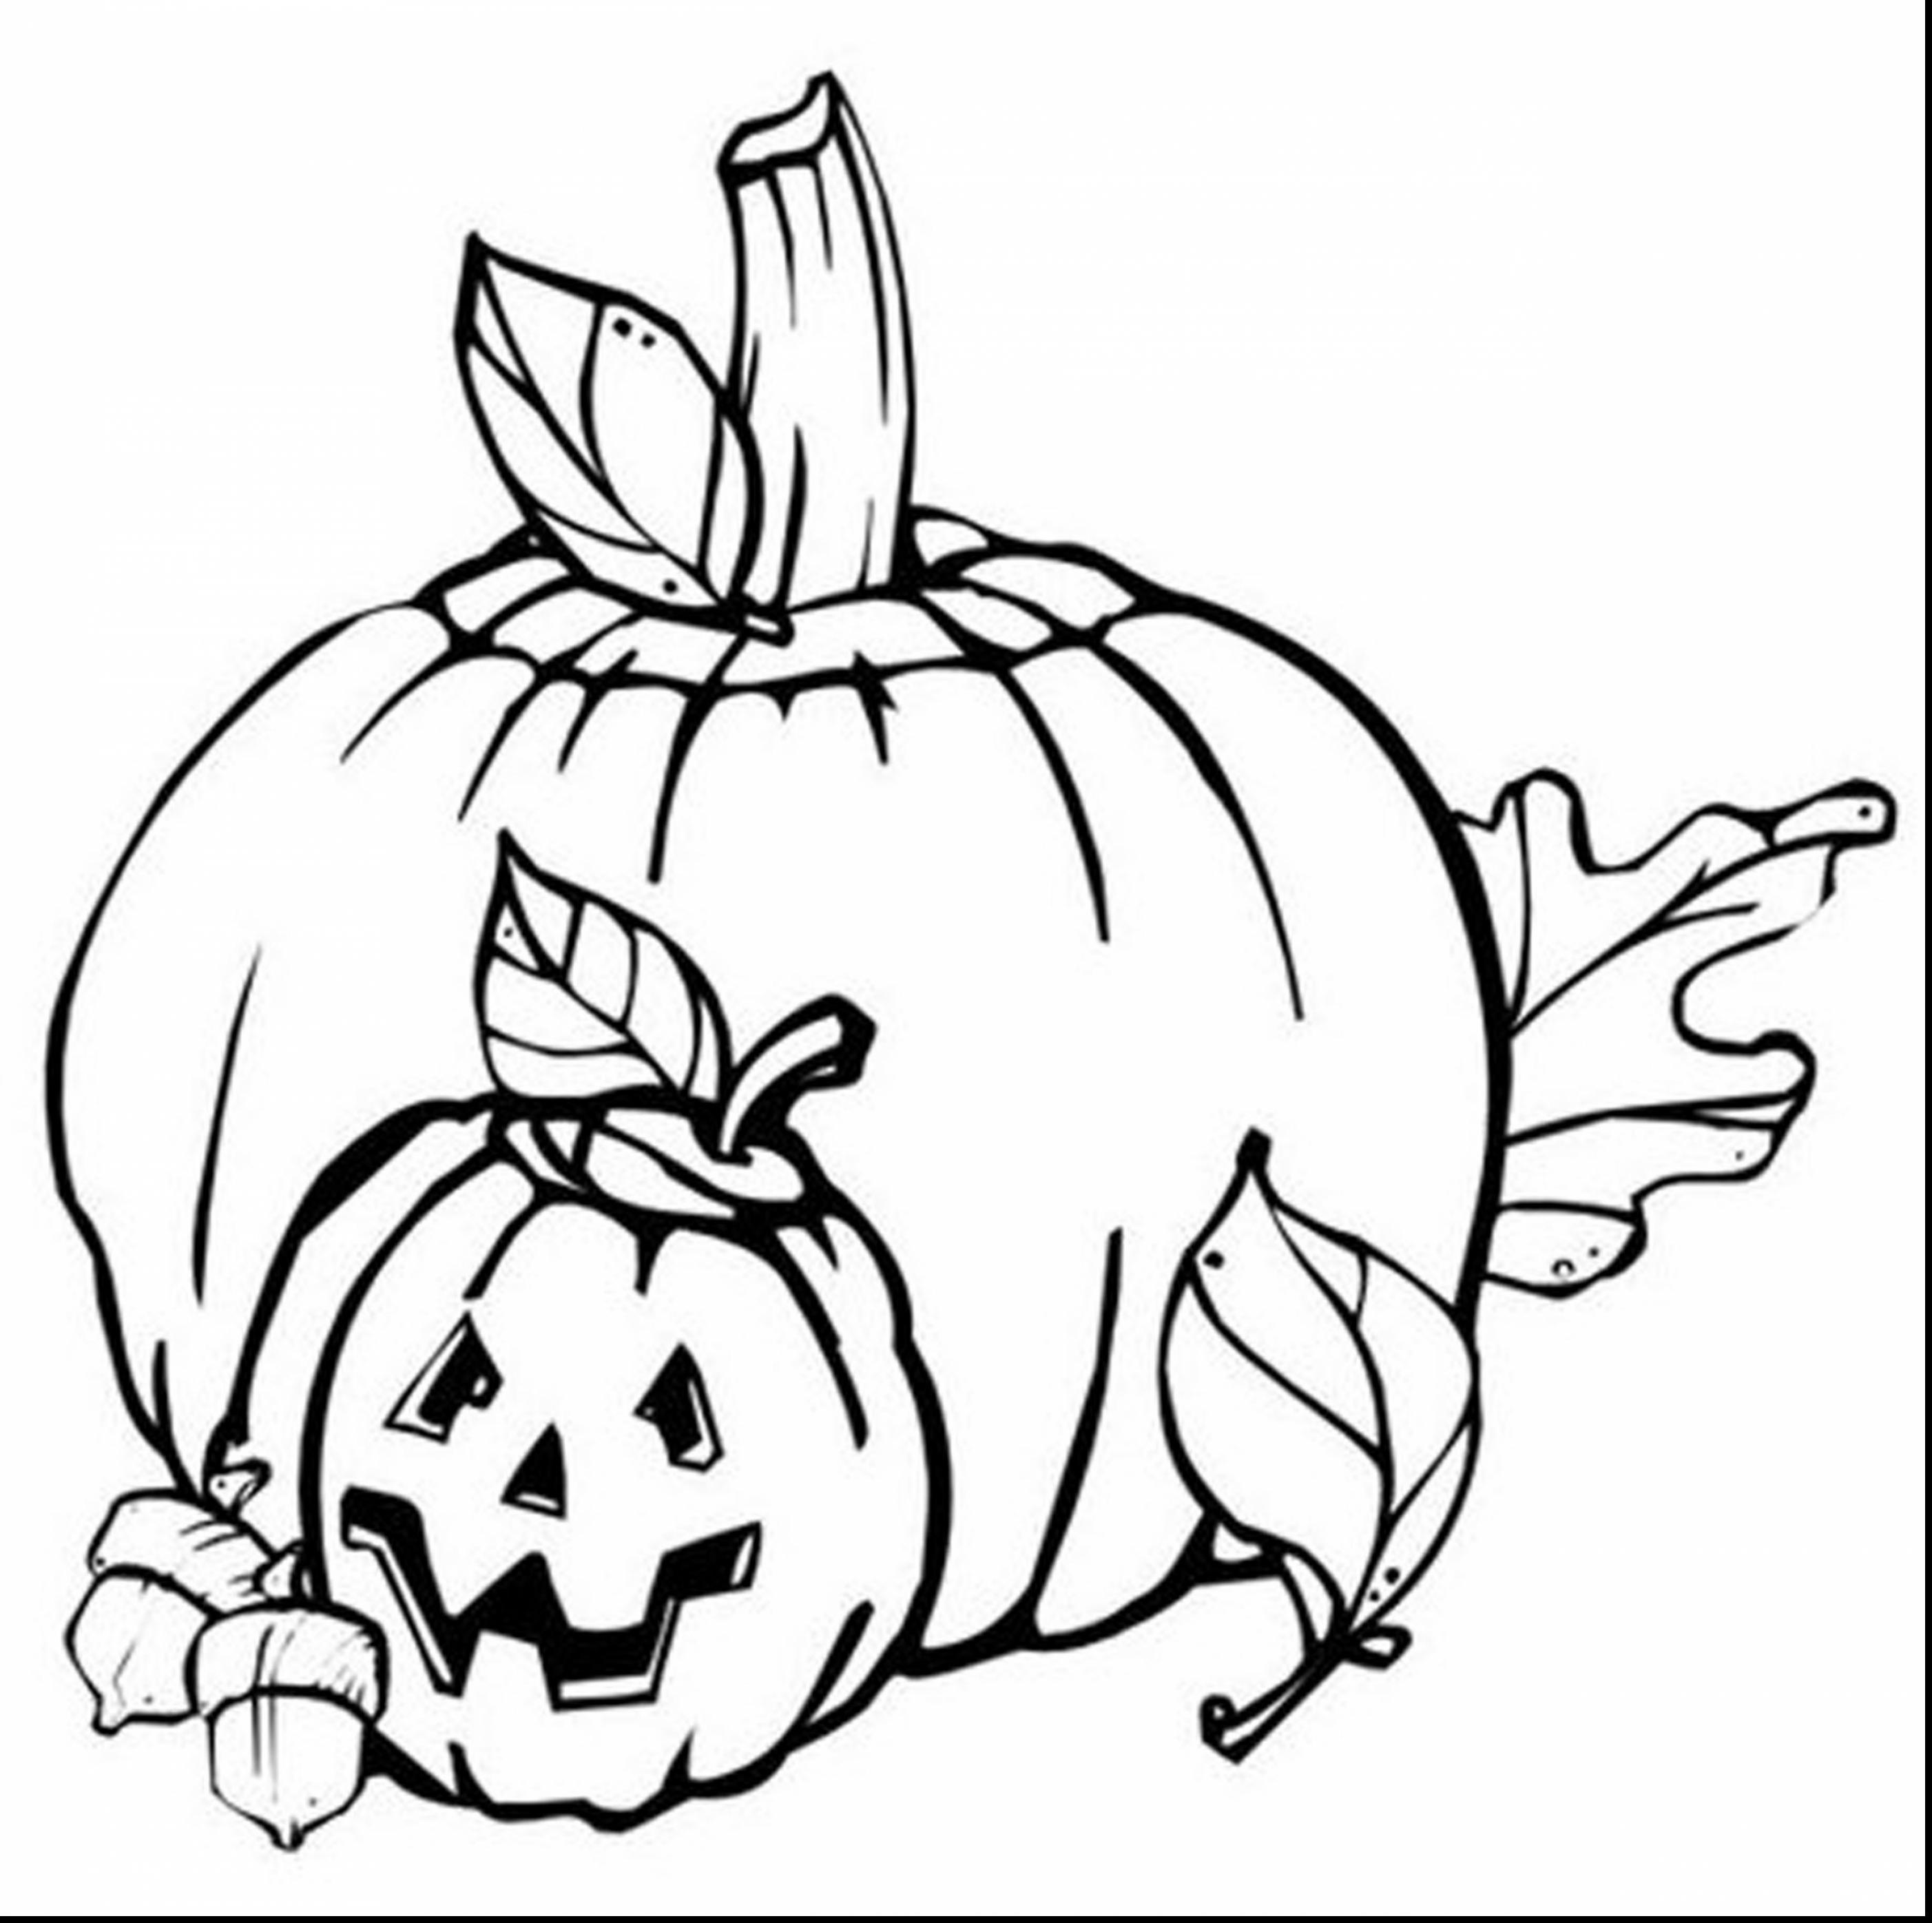 pumpking coloring pages pumpkins coloring pages to celebrate thanksgiving learn pumpking pages coloring